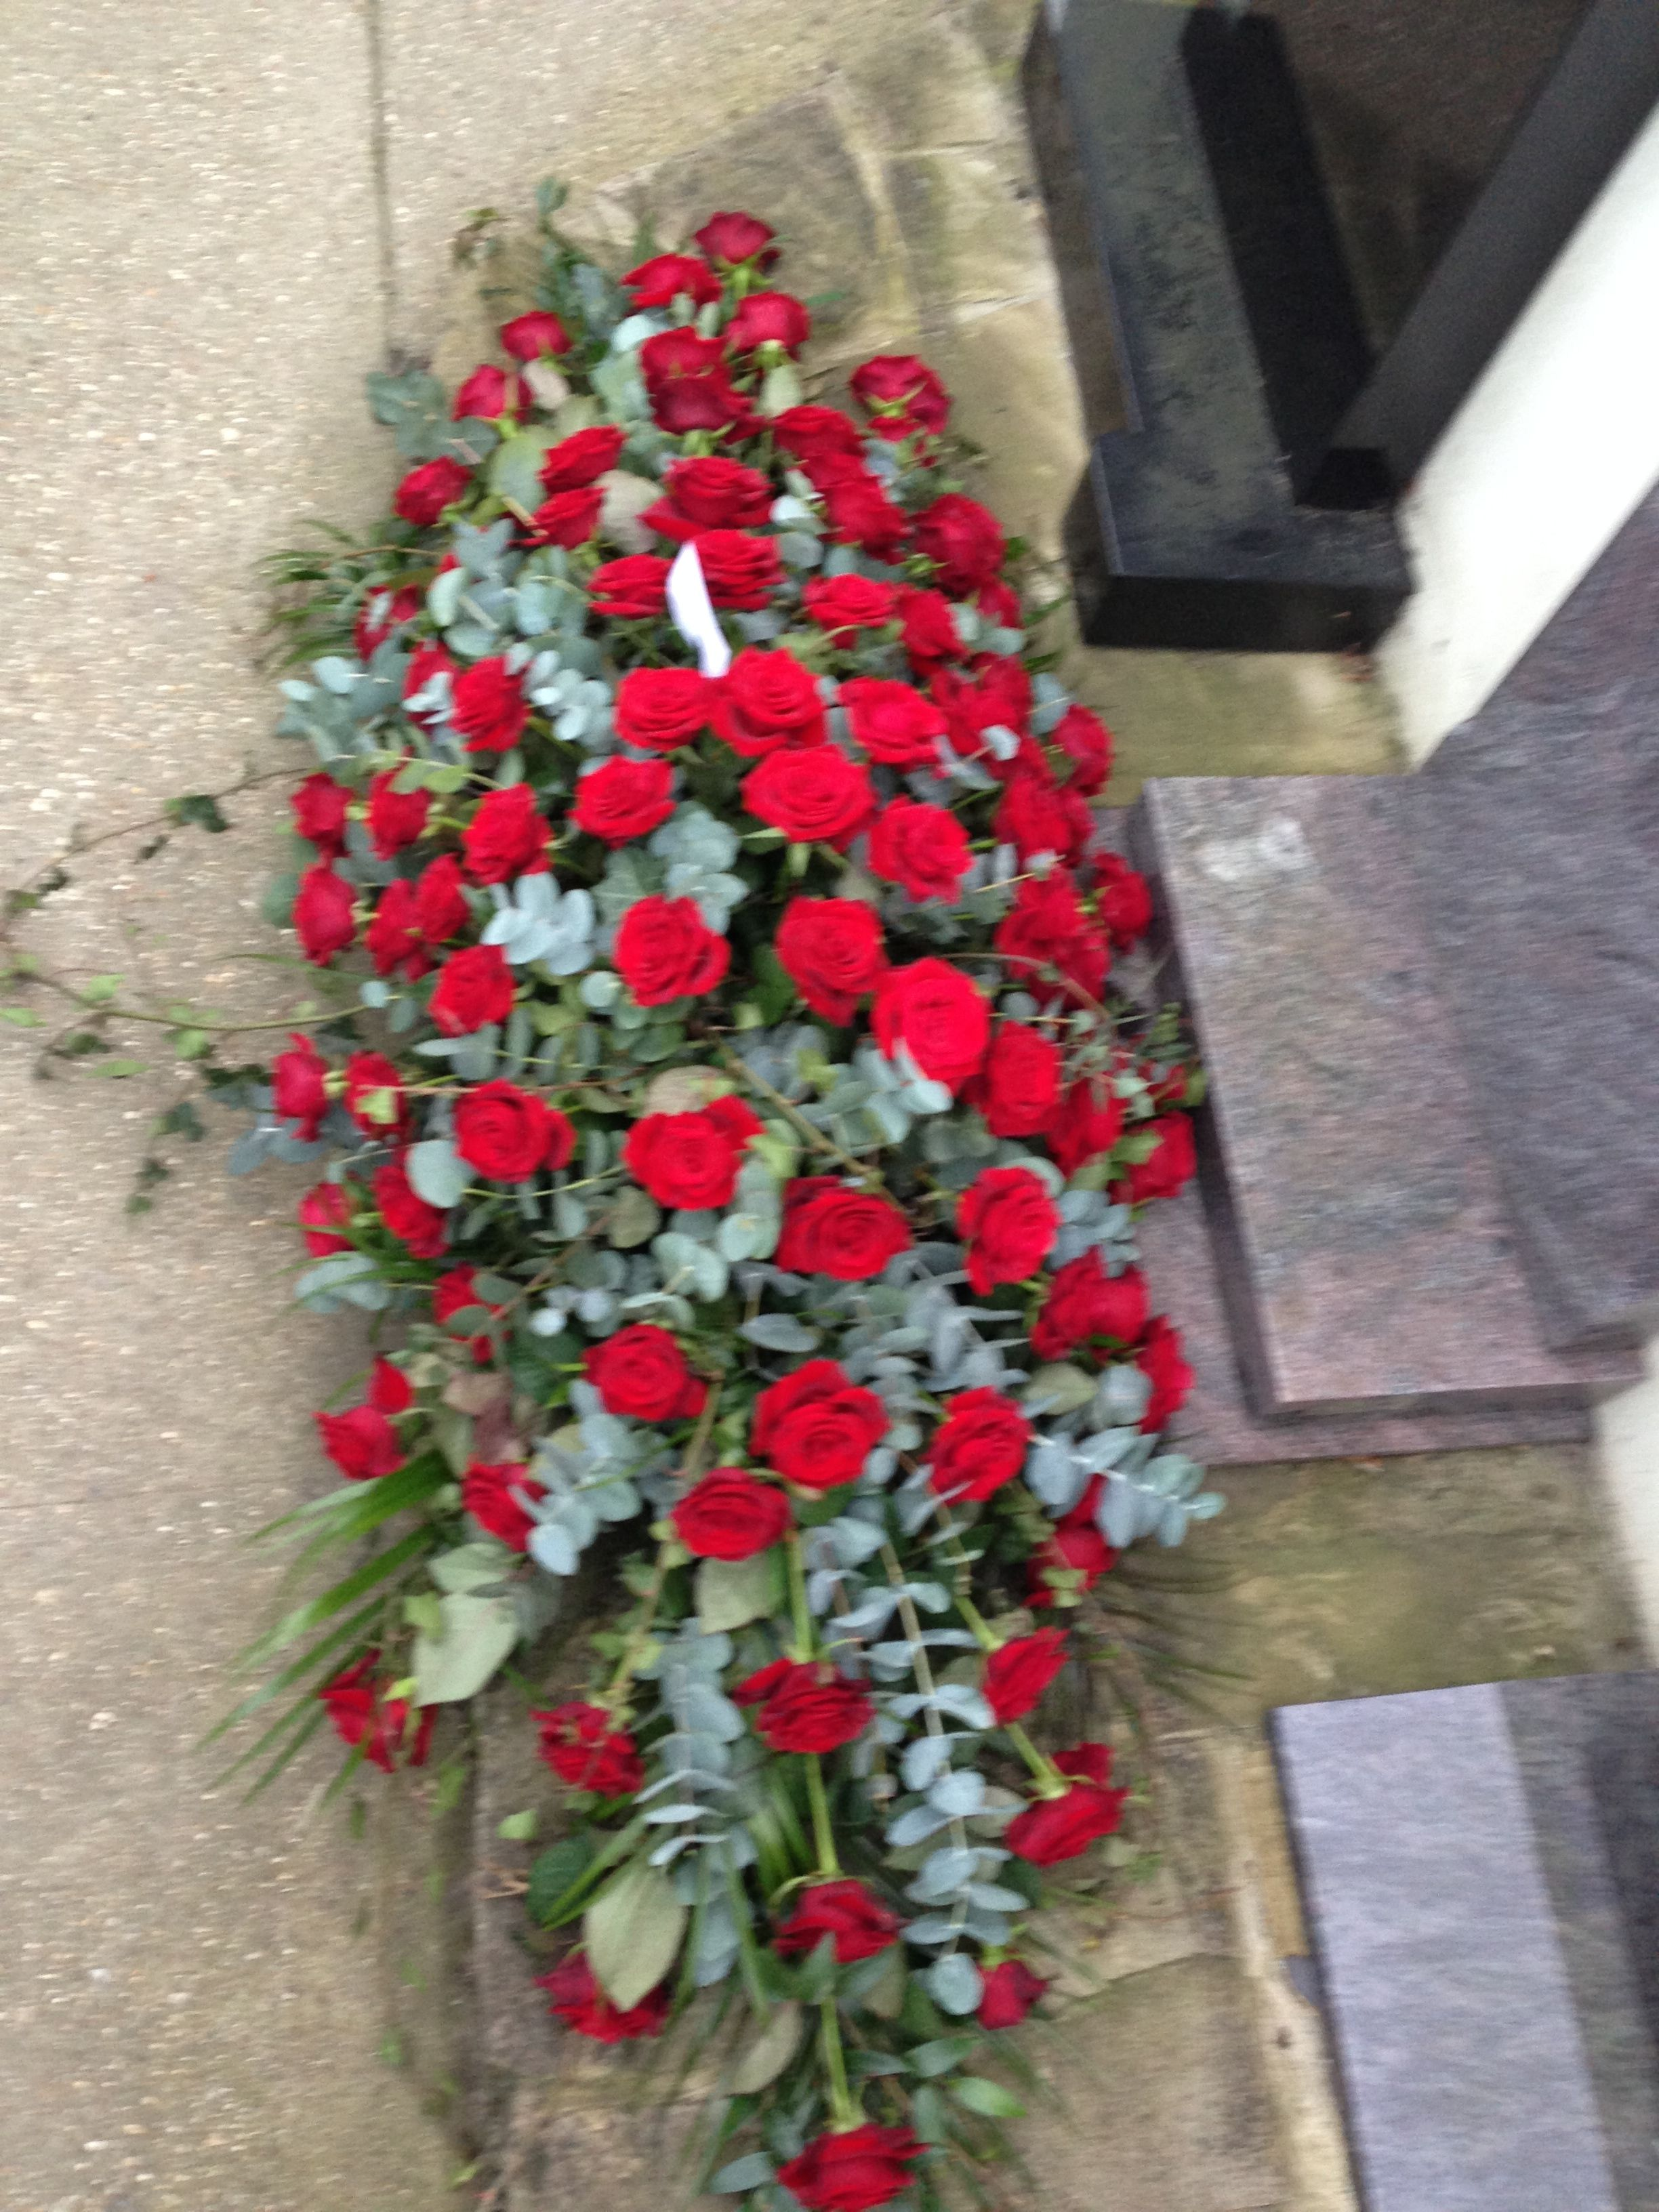 Funeral flowers red rose casket coffin spray www funeral flowers red rose casket coffin spray thefloralartstudio izmirmasajfo Image collections